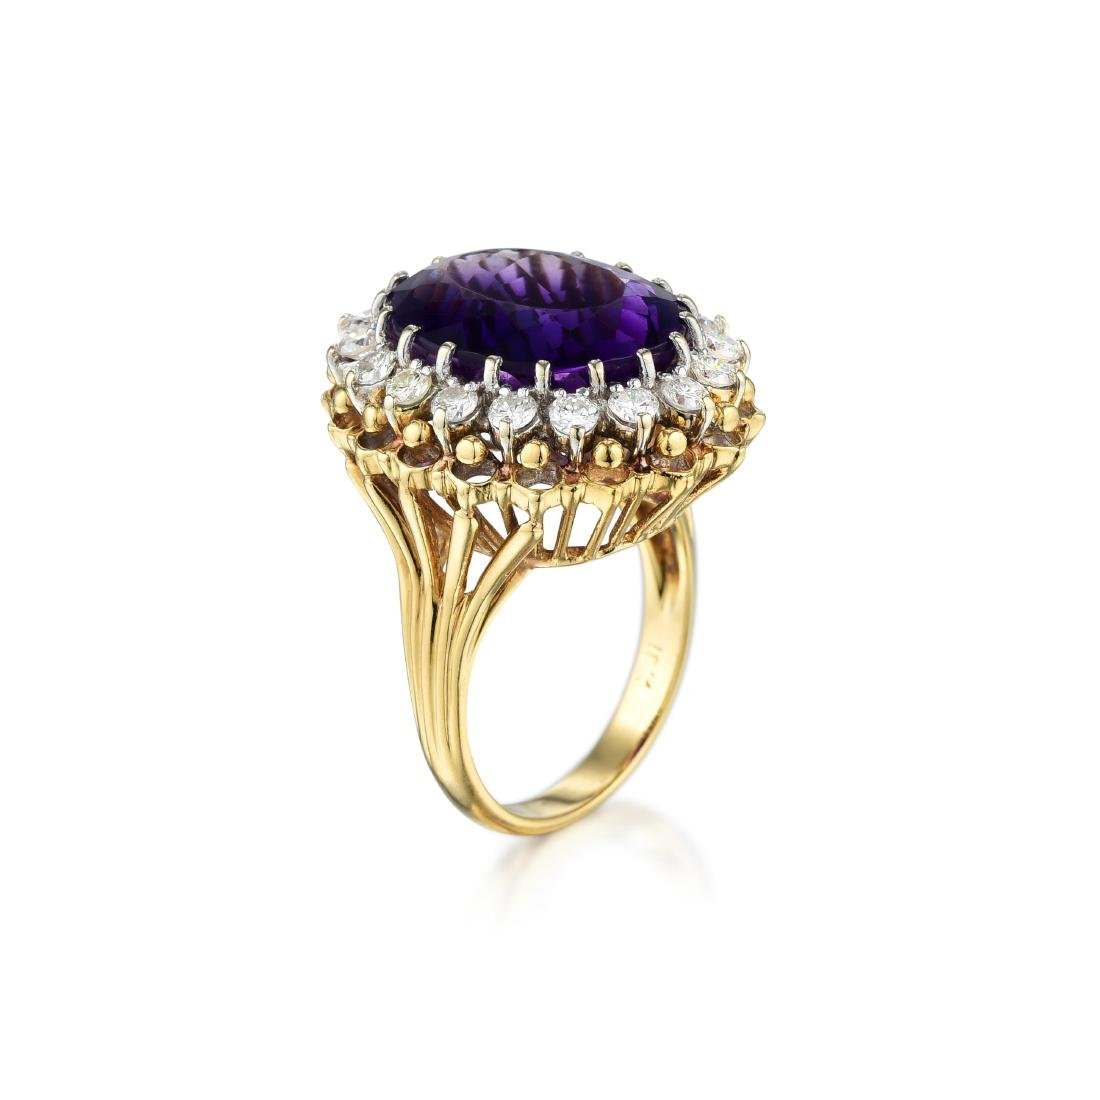 An 18K Gold Amethyst and Diamond Ring - 2